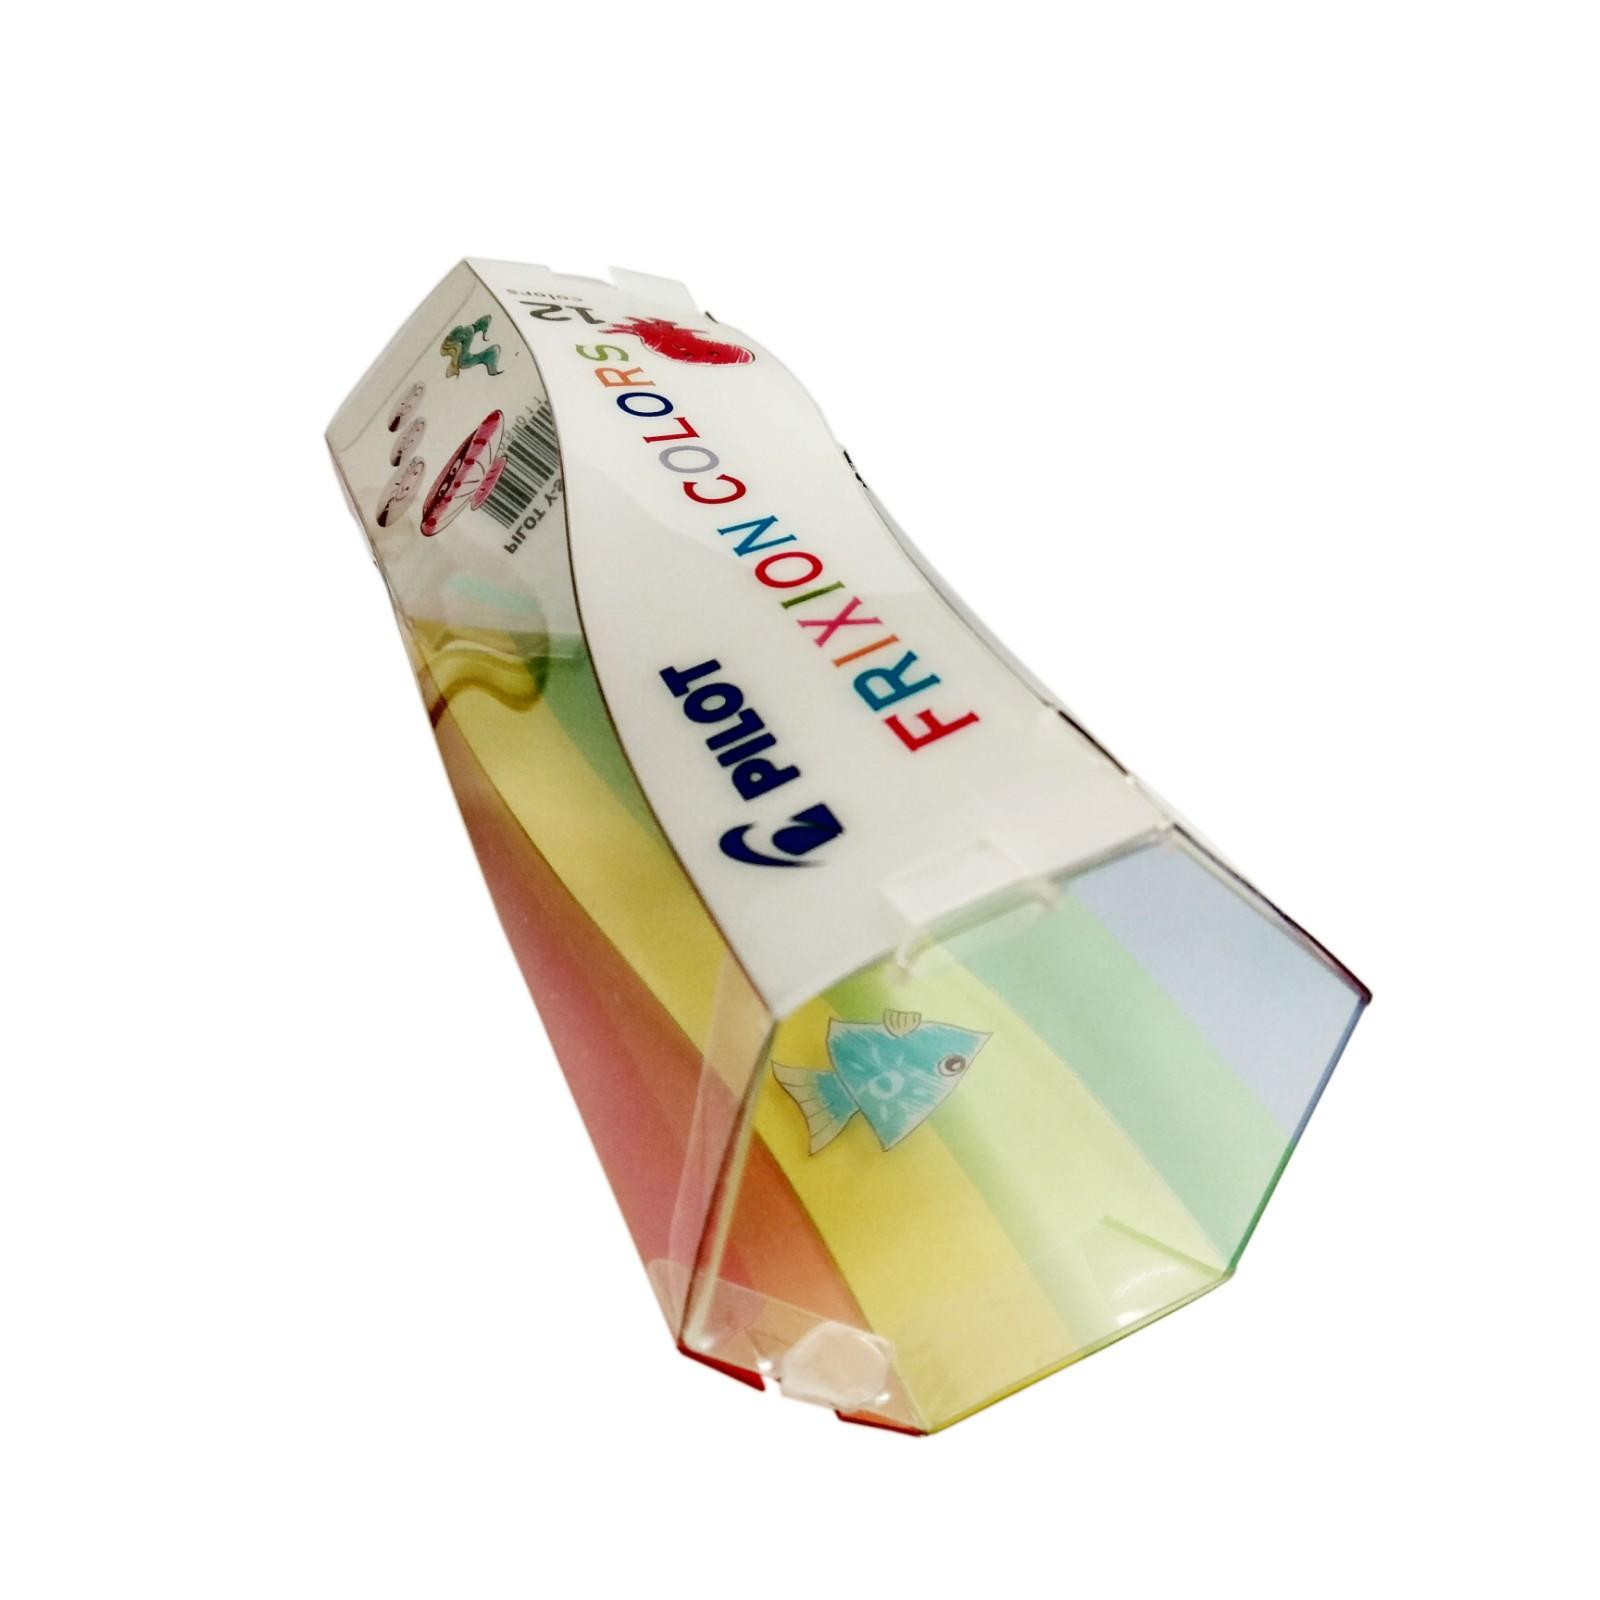 pvc packaging wrap for decor Yijianxing Plastic Products-3